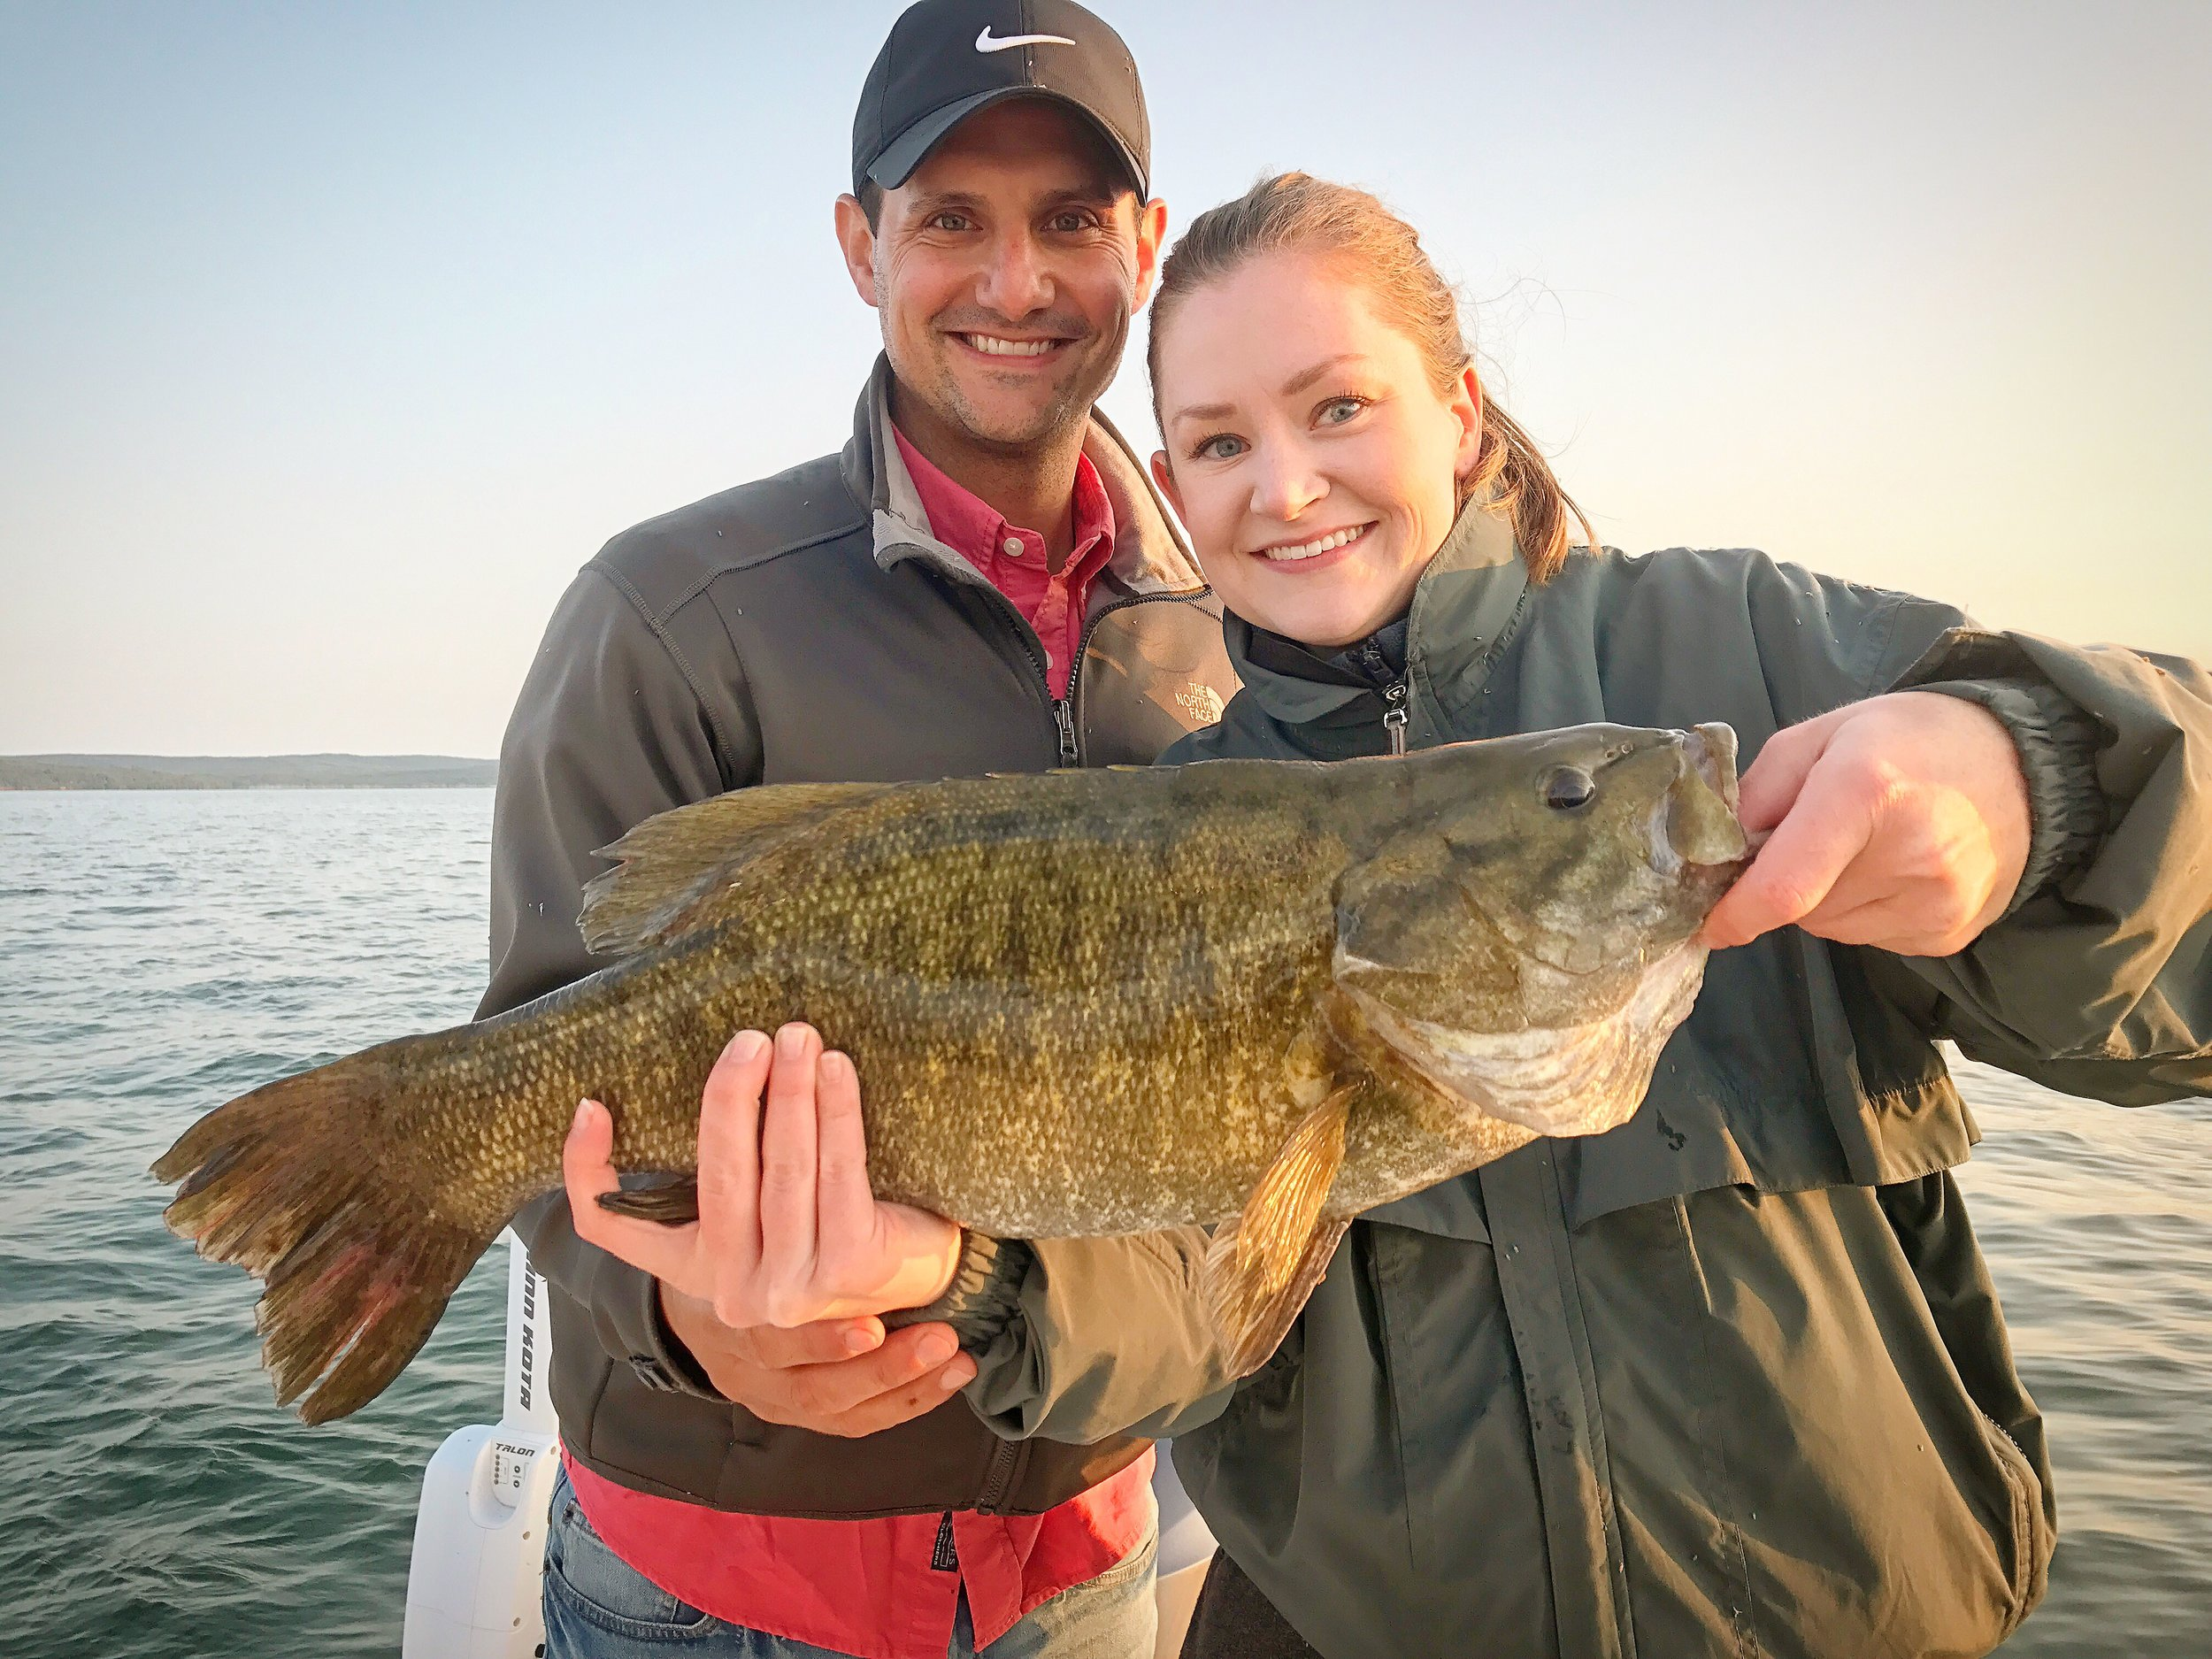 Brandon and Christa from California spent a day on the water and put some very nice fish in the boat including this fish.  22 inchers are very rare on the Bay, but this one made the cut.  Very cool to see.